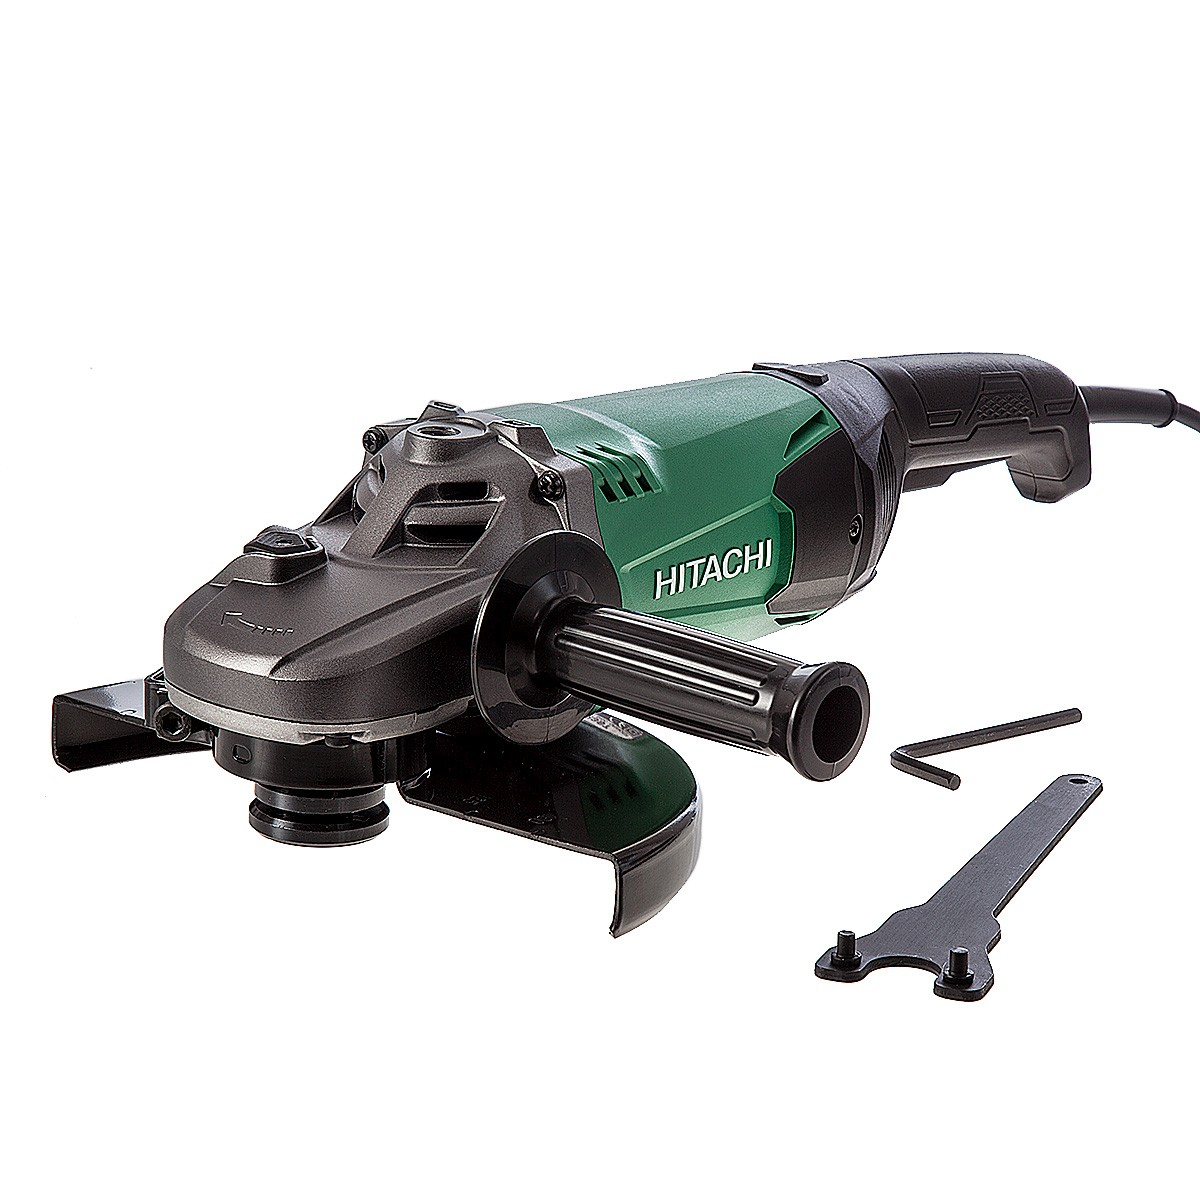 "Hitachi G23ST Disc 9"" / 230mm Angle Grinder"